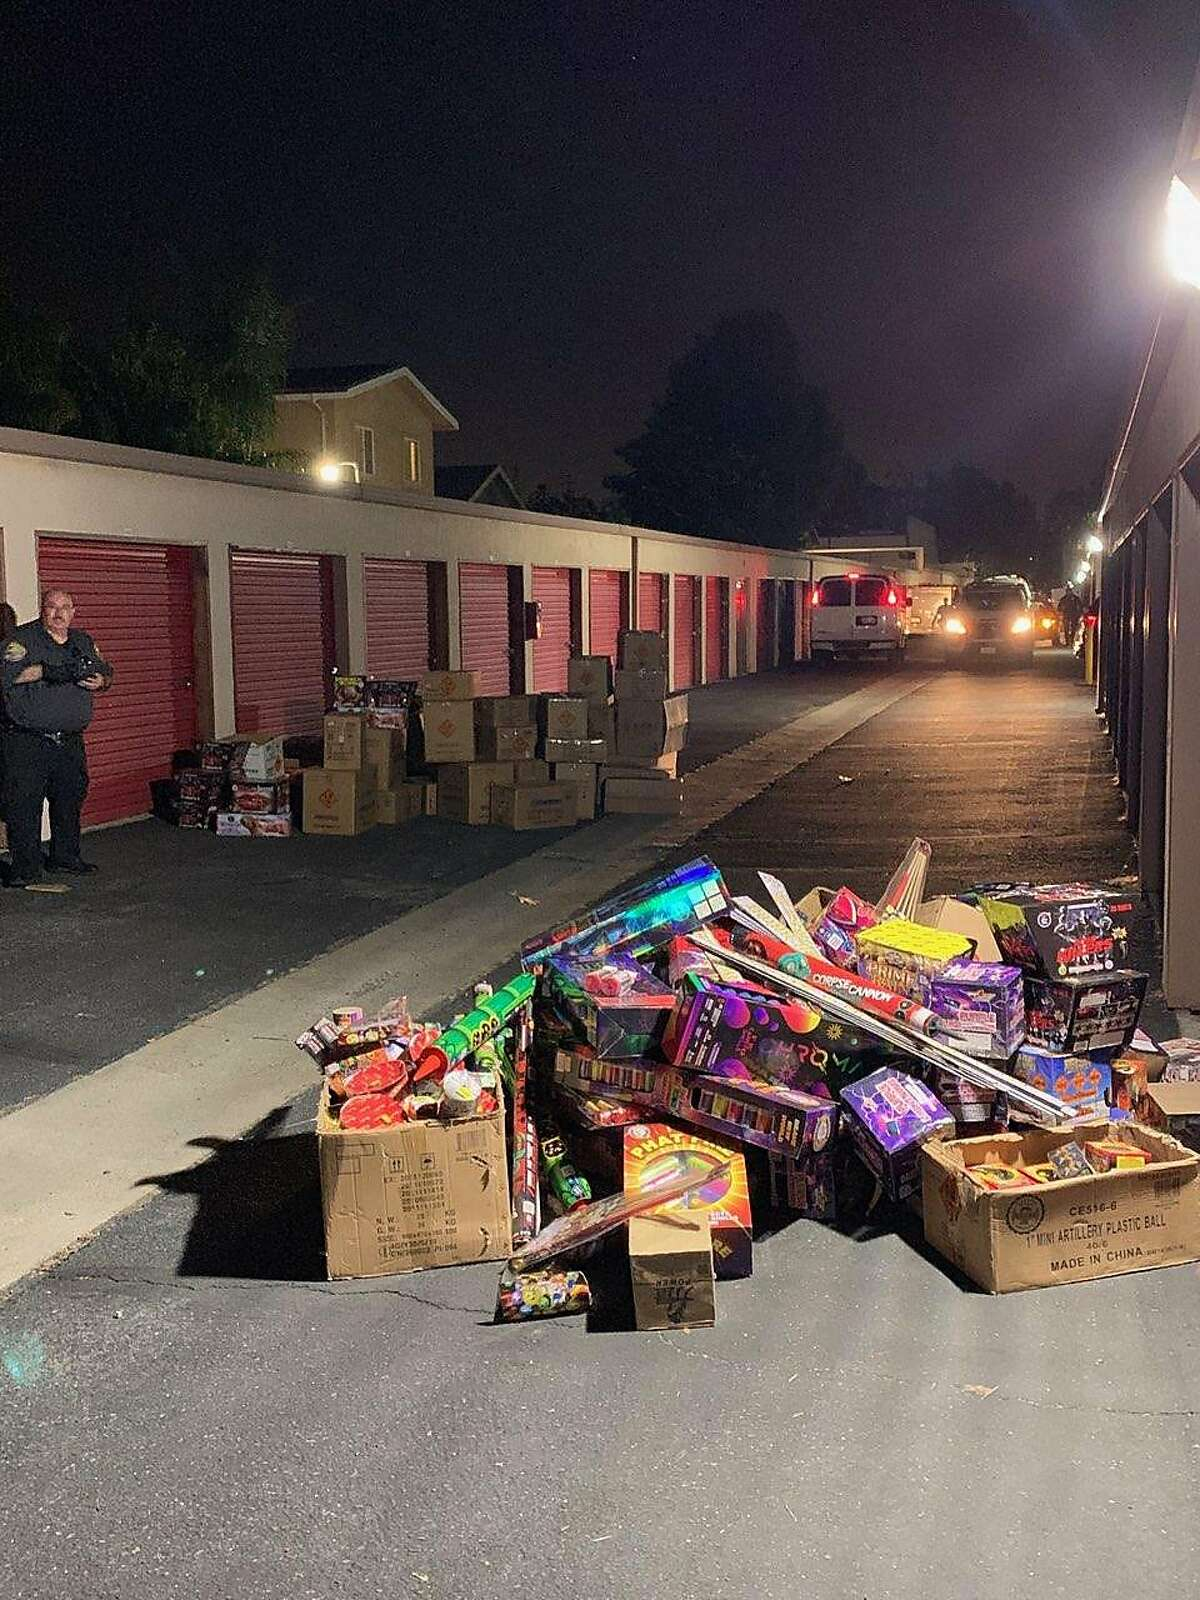 San Leandro police seized over a ton of fireworks from a self-storage facility on Tuesday, which included explosives that could shoot over 125 feet in the air.